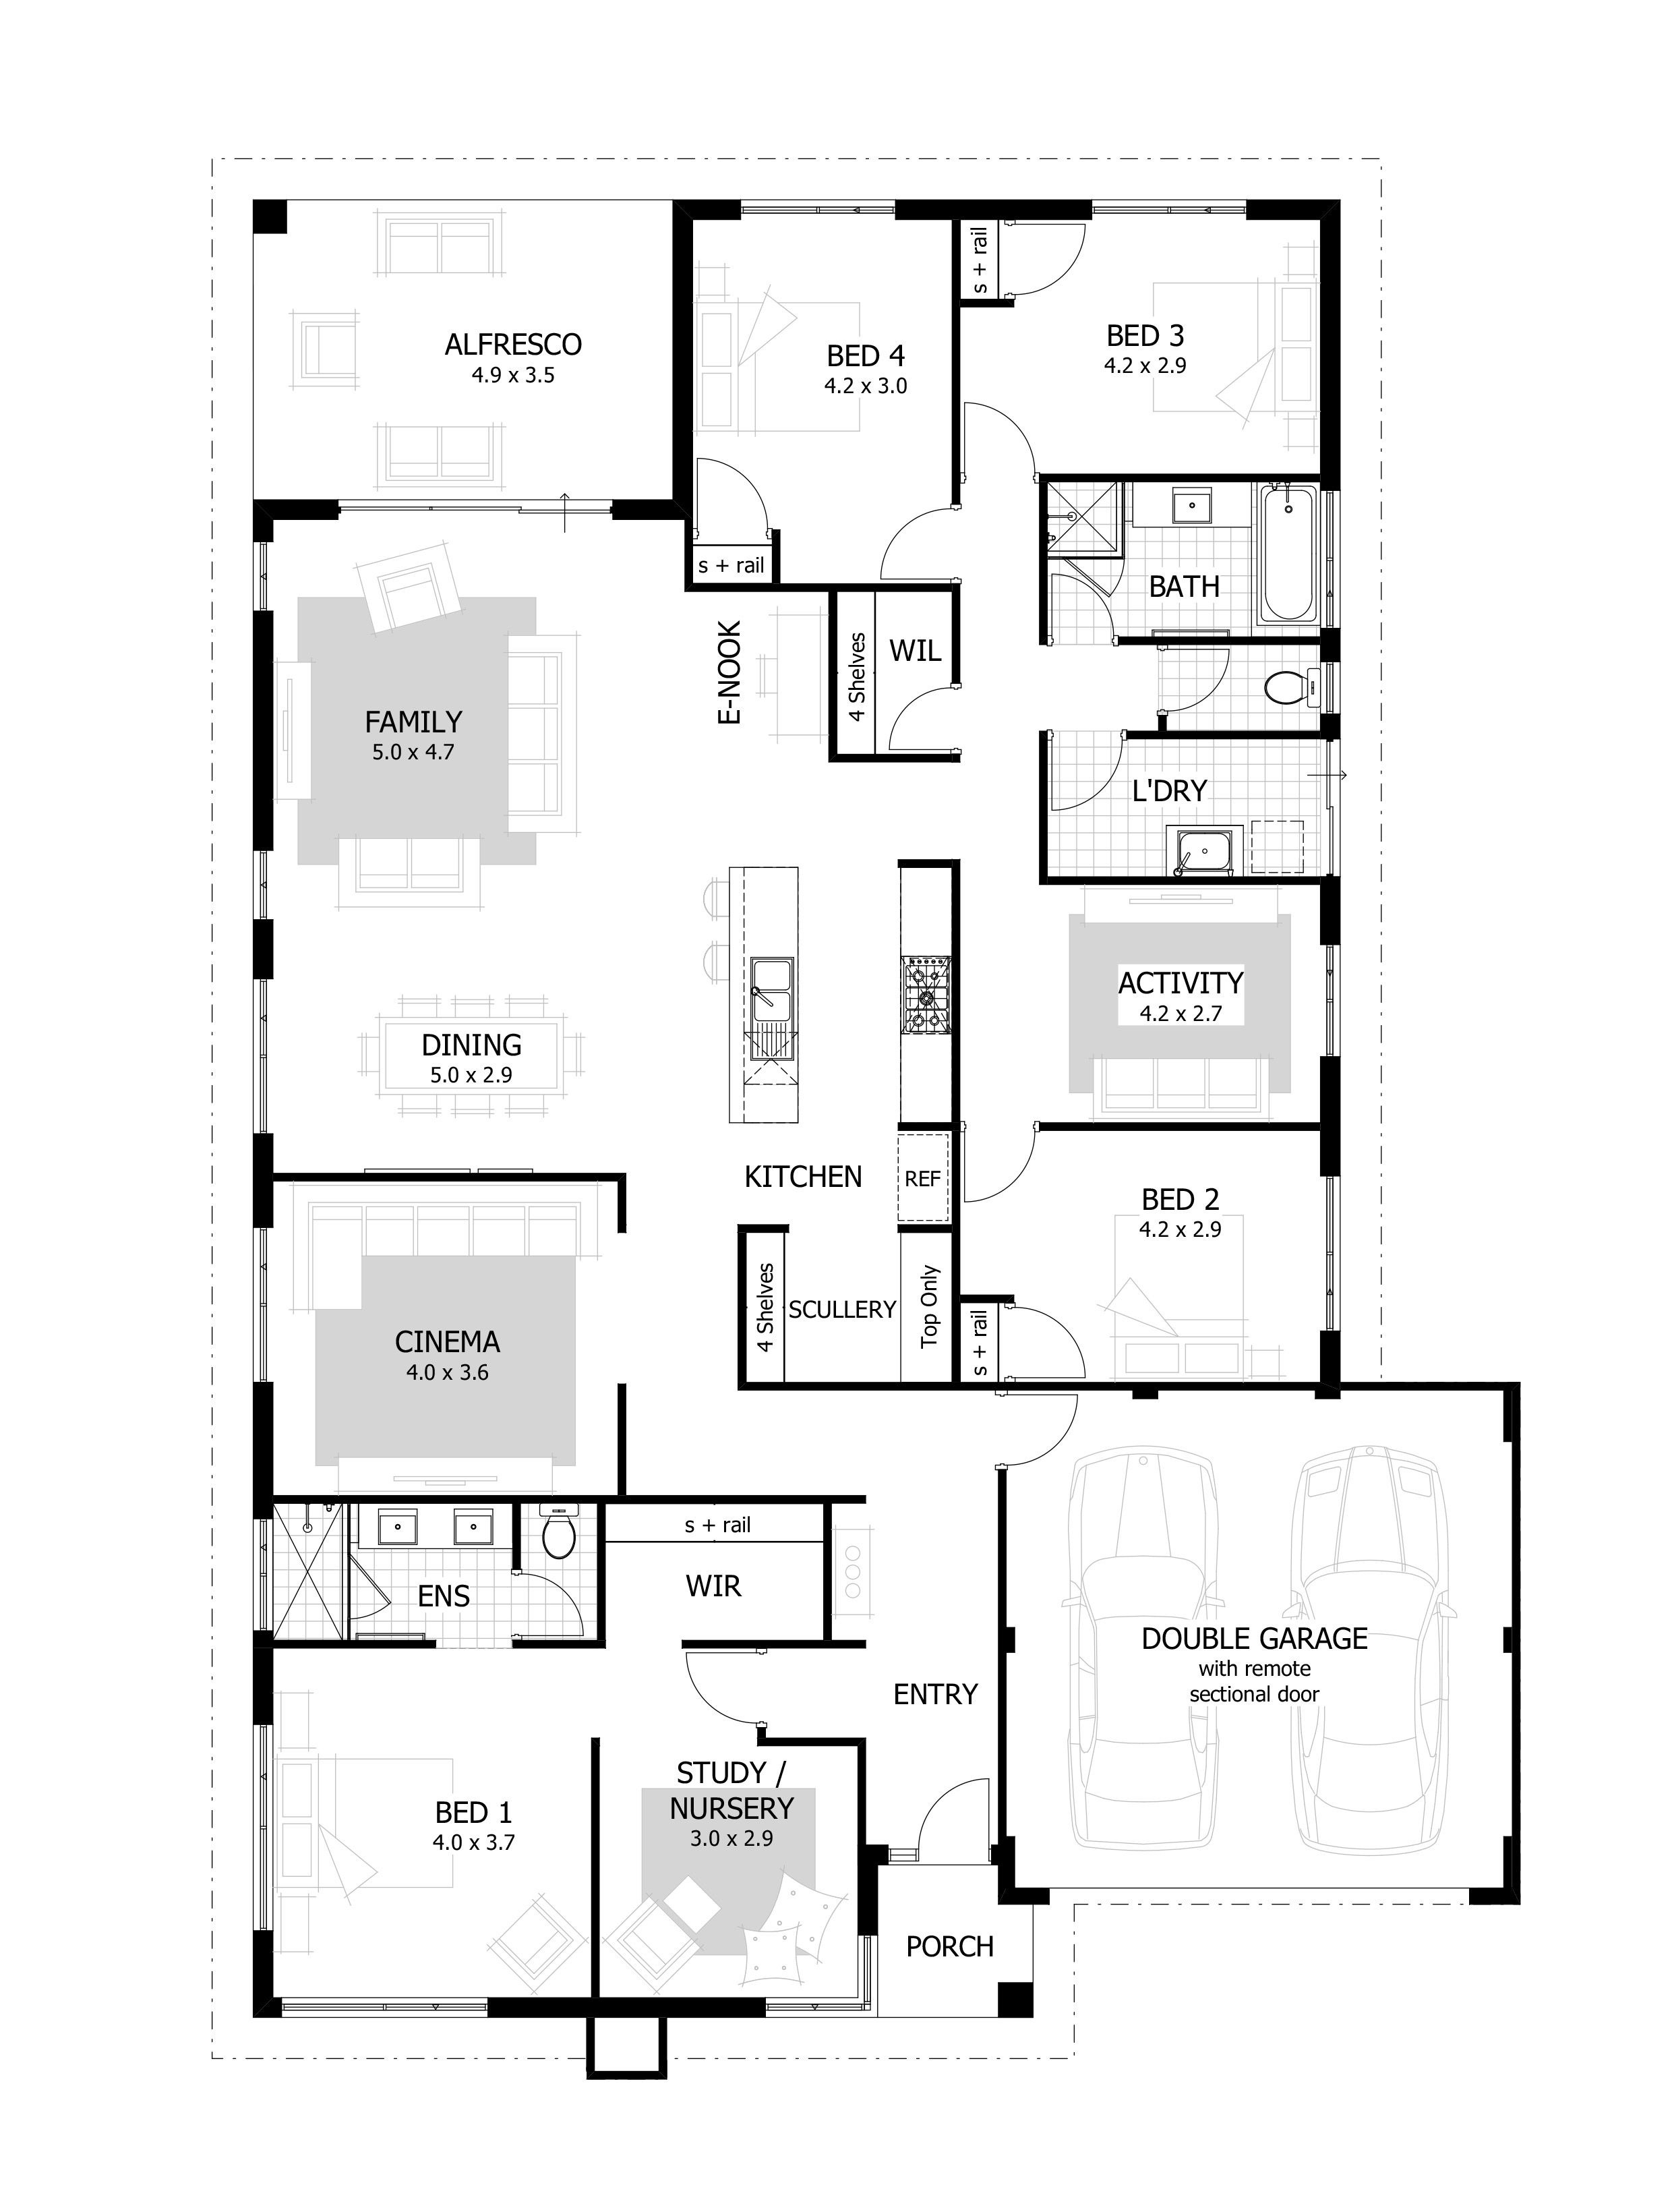 Small 4 Bedroom House Plans Lovely 4 Bedroom House Plans & Home Designs Celebration Homes